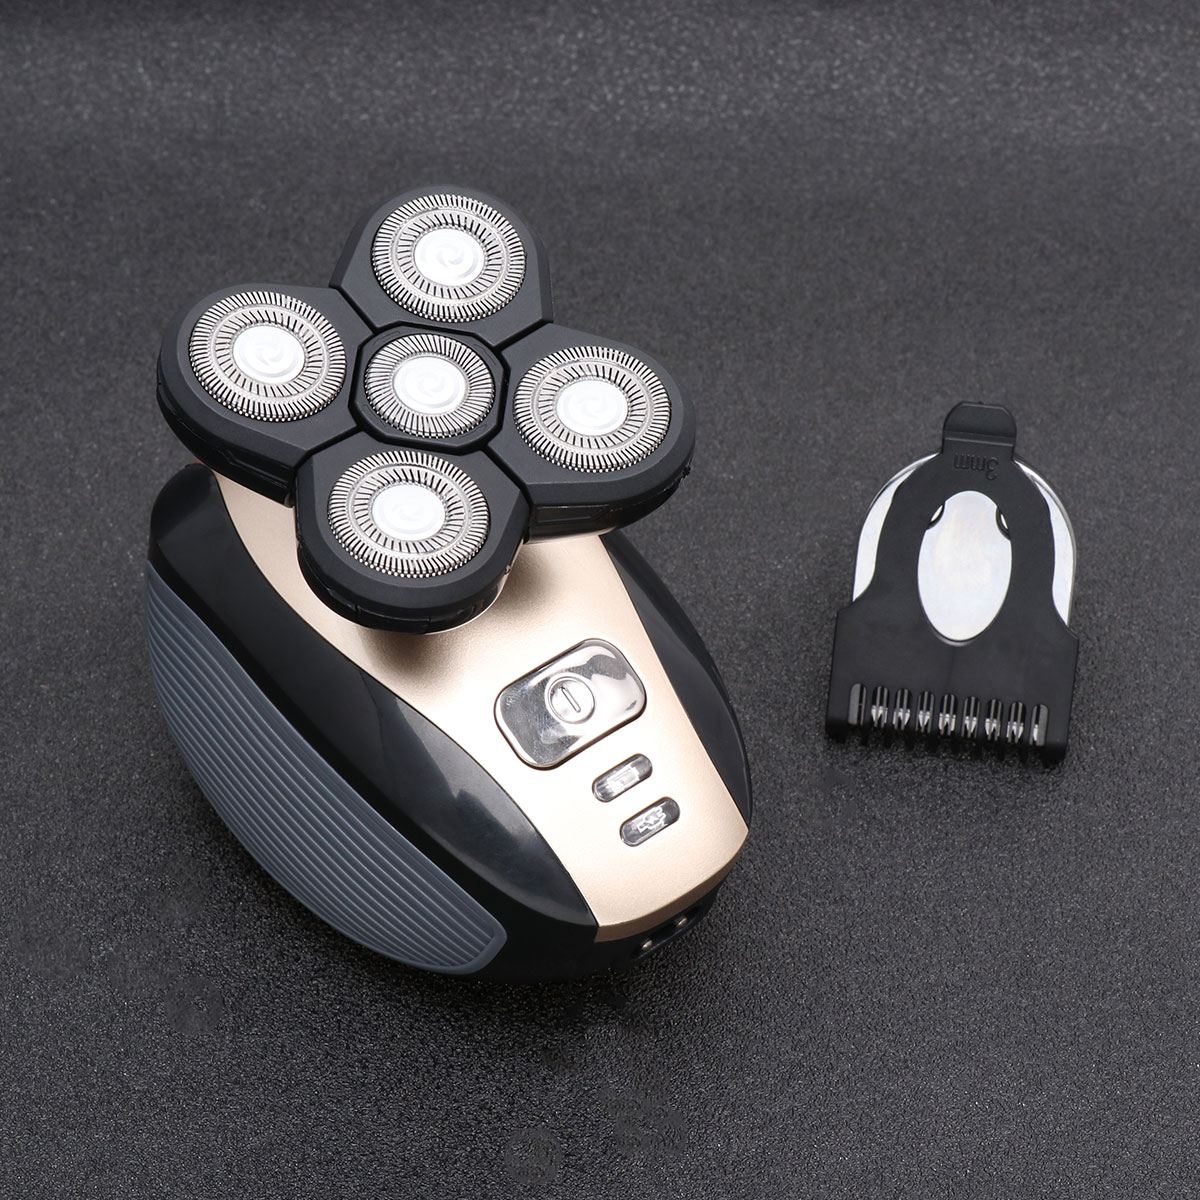 Electric Shaver Corded and Cordless Rechargeable 3D Rotary Shaver Razor for Men Wet and Dry Painless